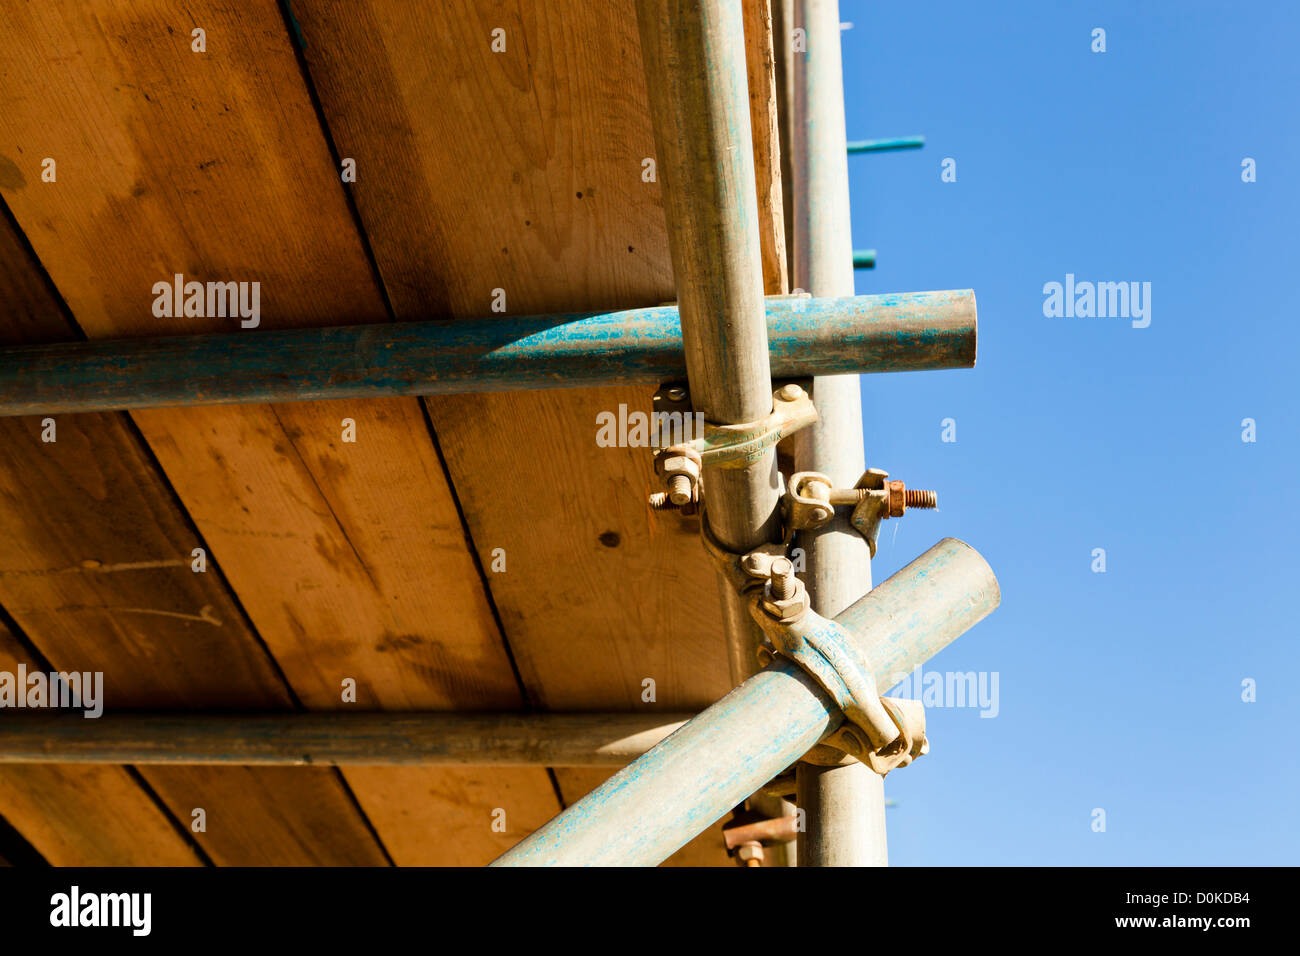 Close up underneath scaffold joints under a platform using scaffolding poles and couplers, England, UK - Stock Image